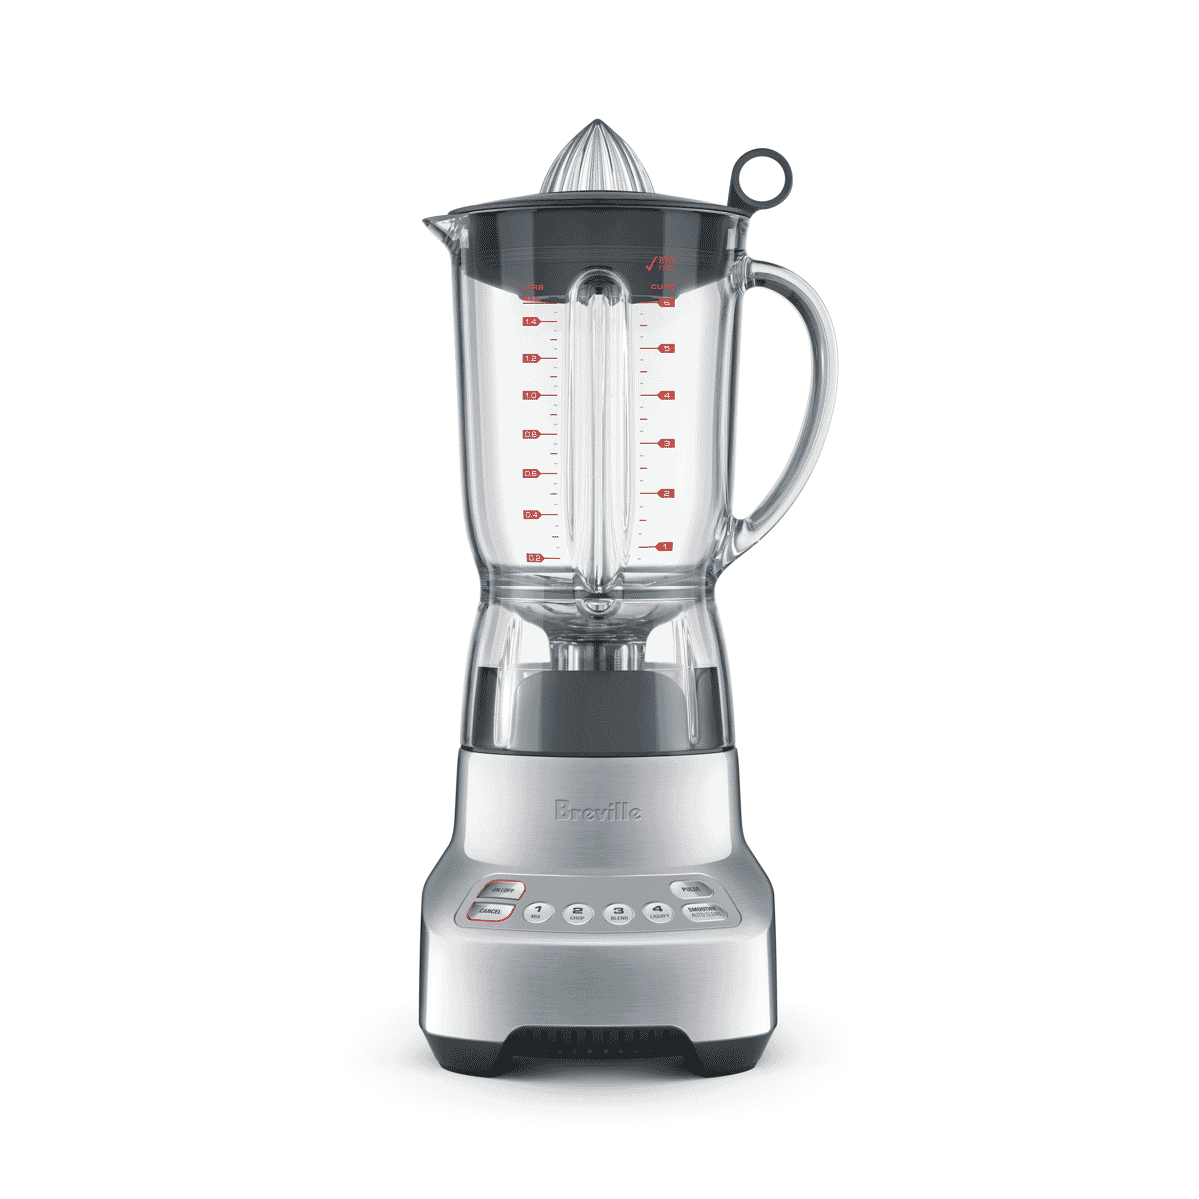 The Kinetix Twist Blender